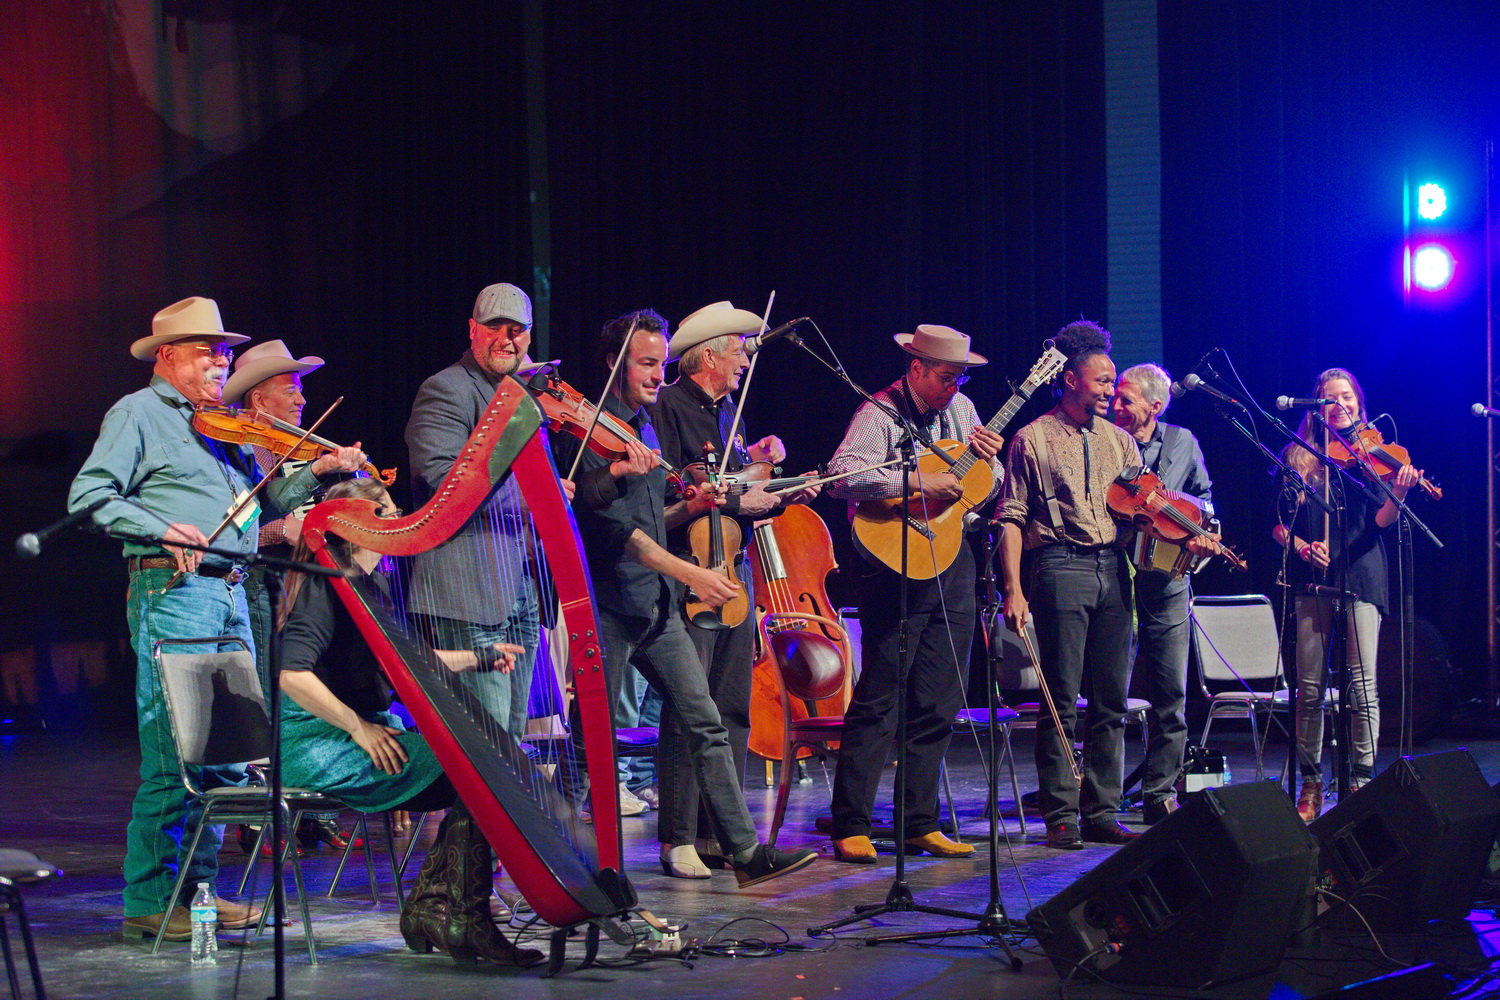 Saturday's Fiddling Around Show: the more, the merrier. Photo by Charlie Ekburg